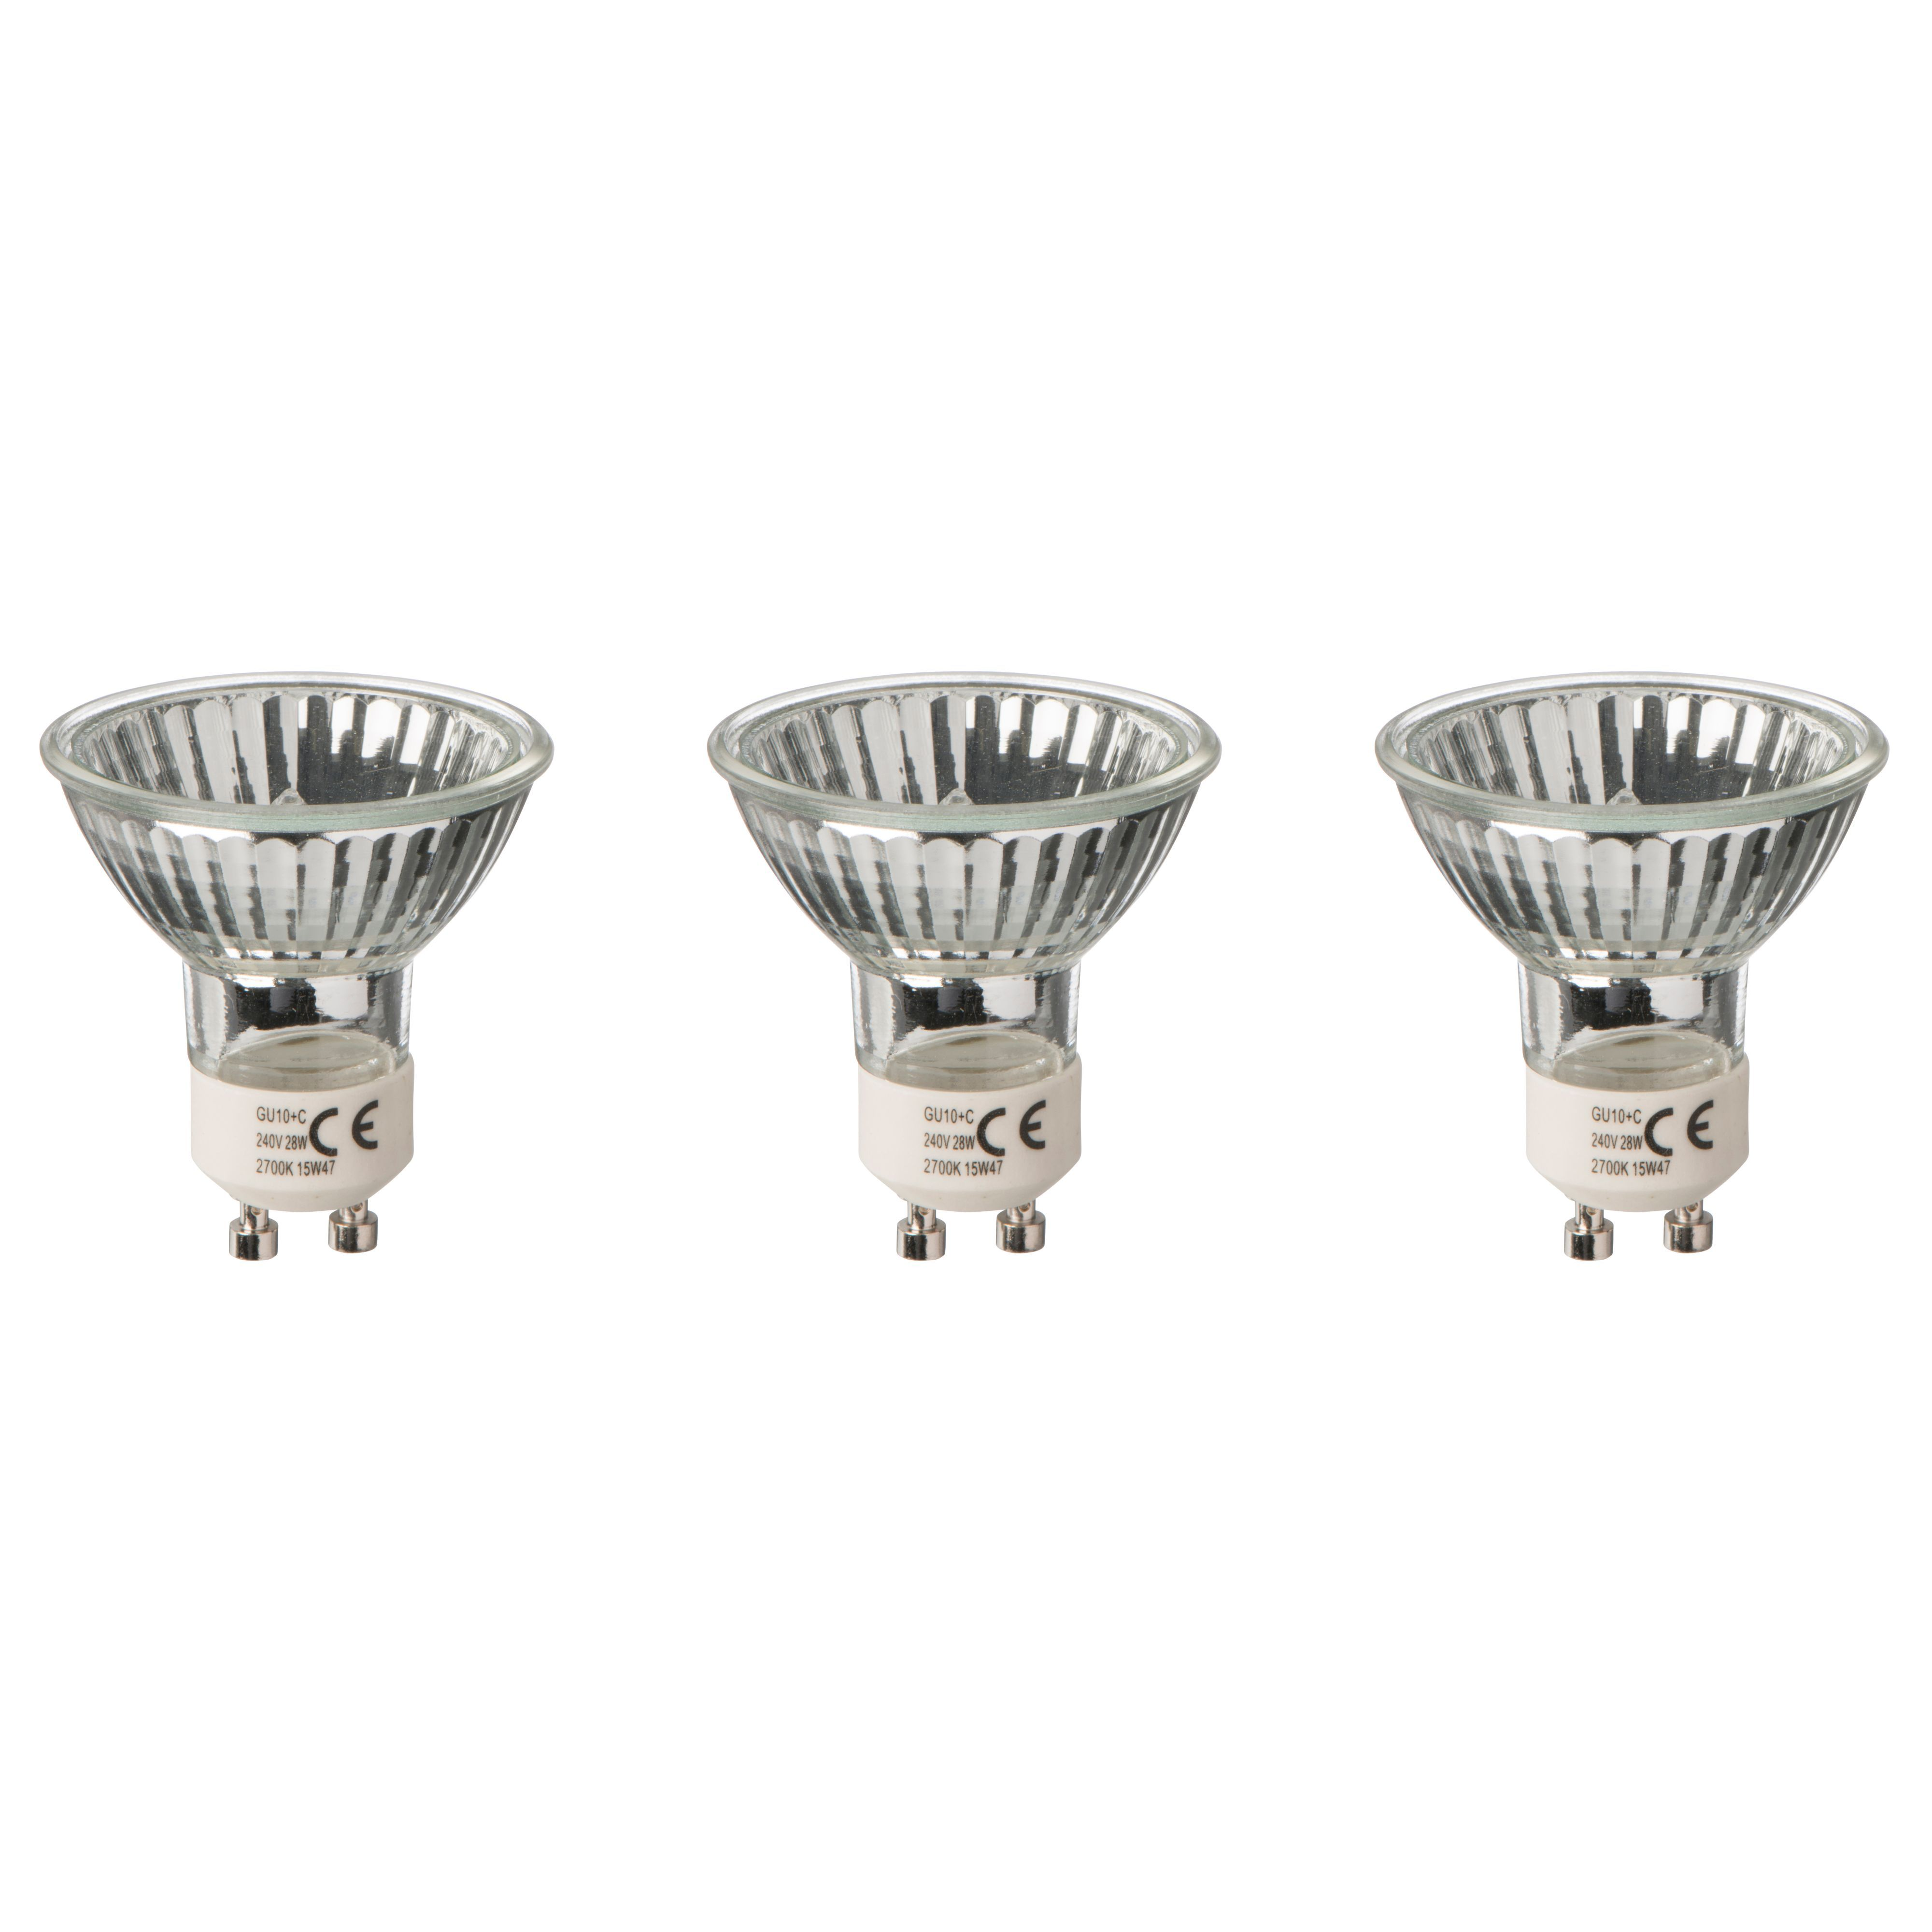 Diall Gu10 28w Halogen Dimmable Reflector Light Bulb, Pack Of 3